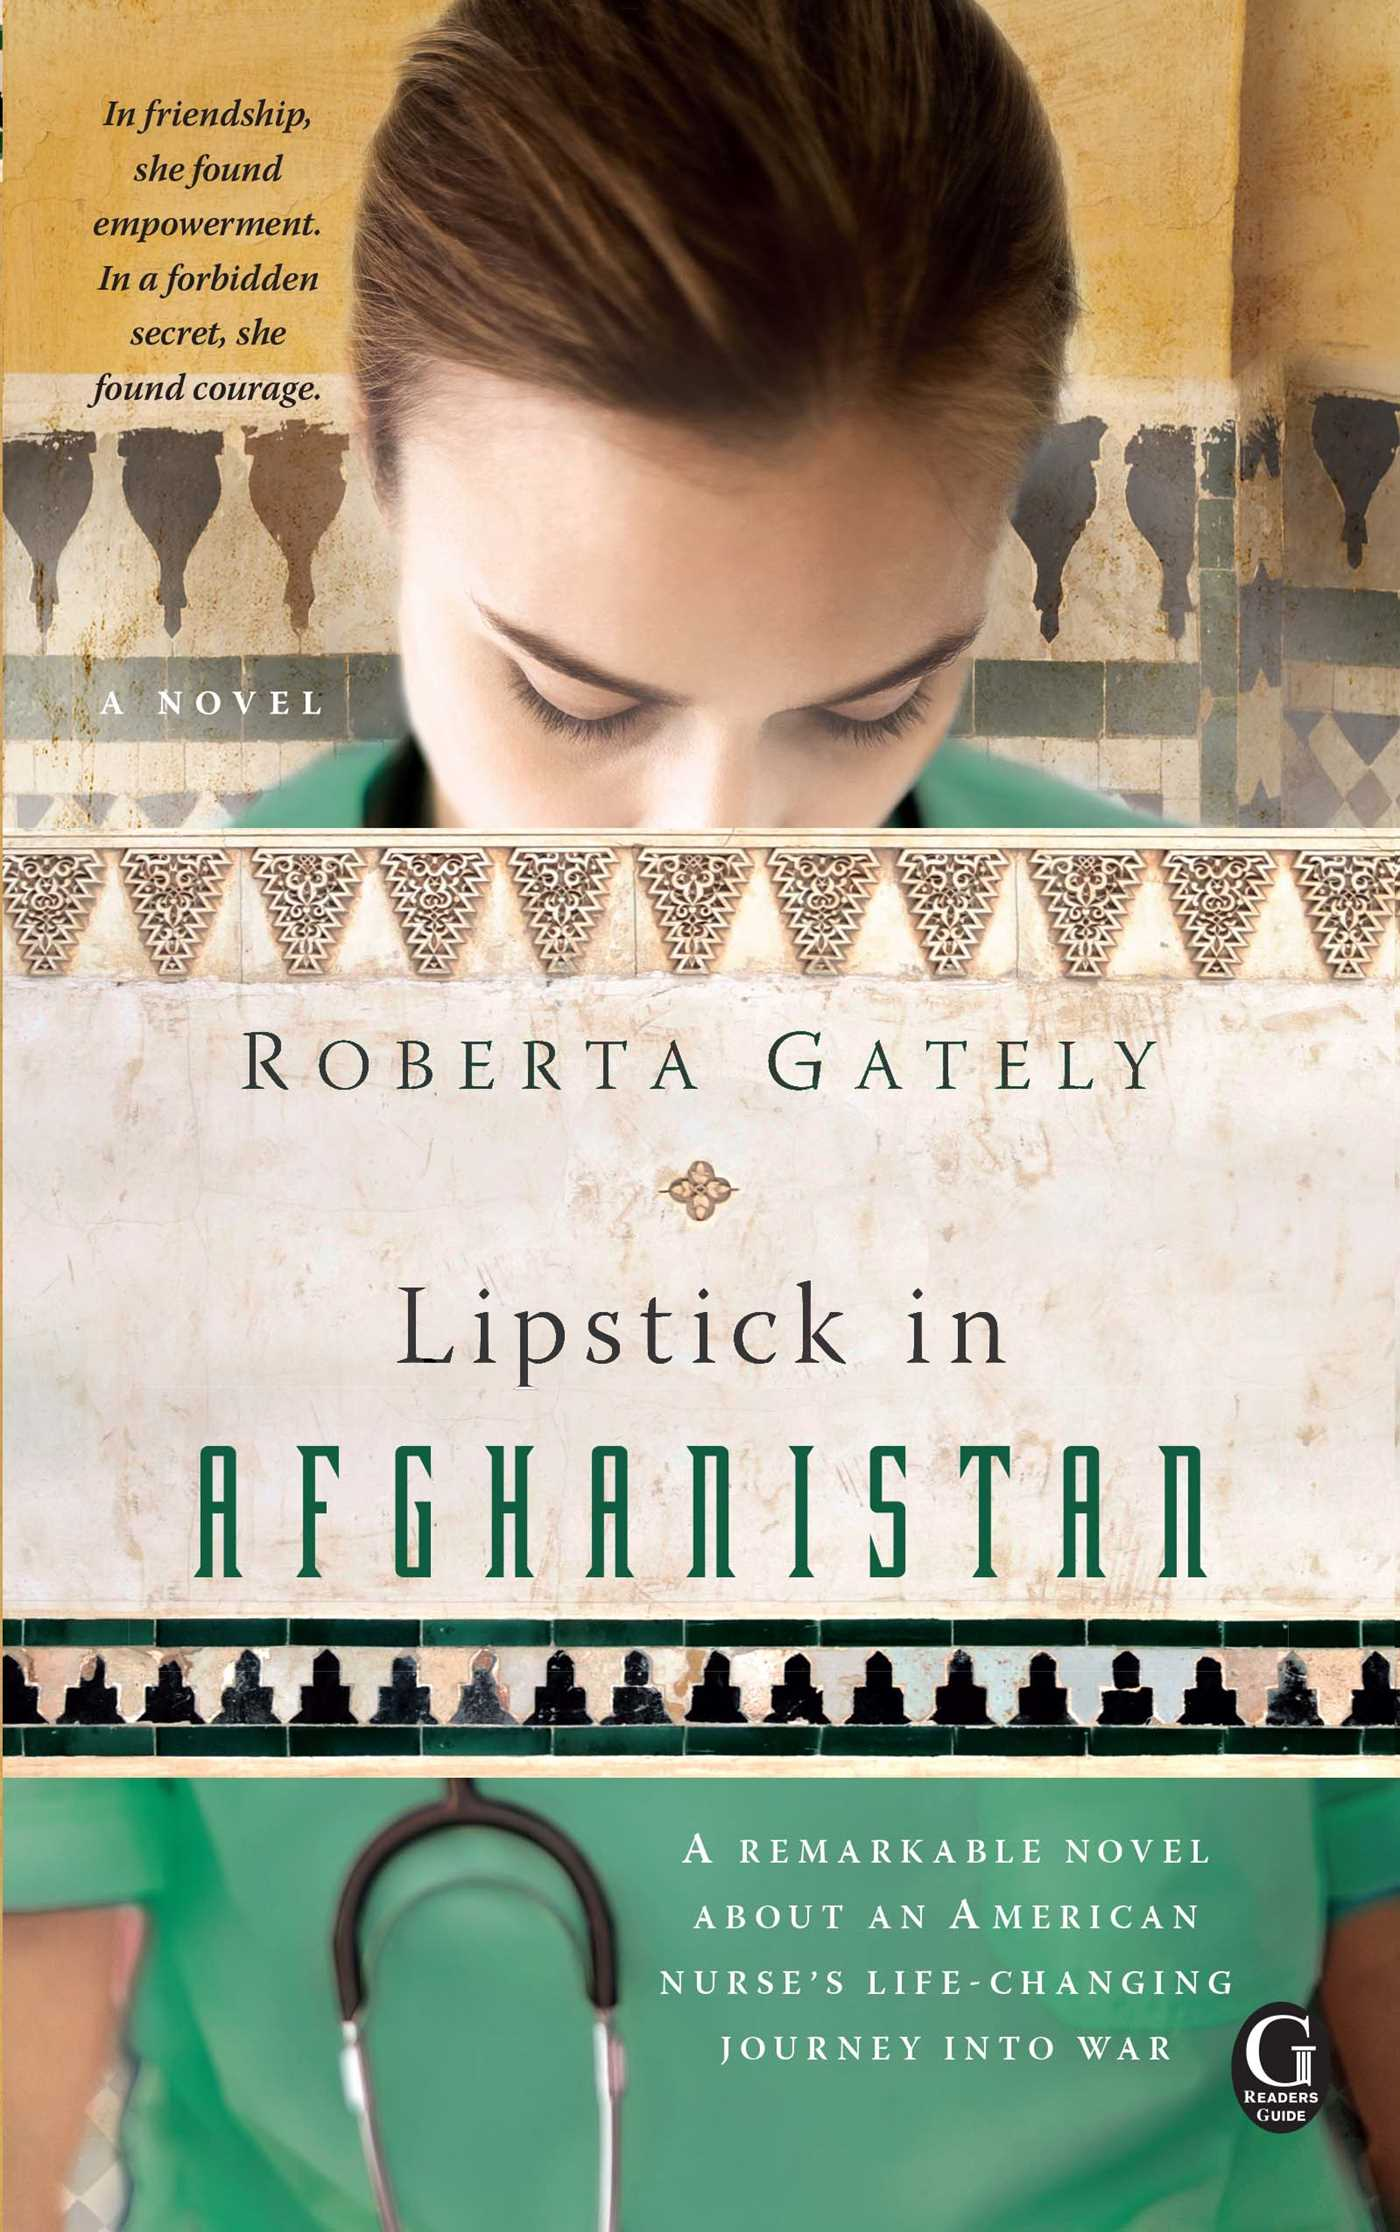 Lipstick-in-afghanistan-9781439191446_hr